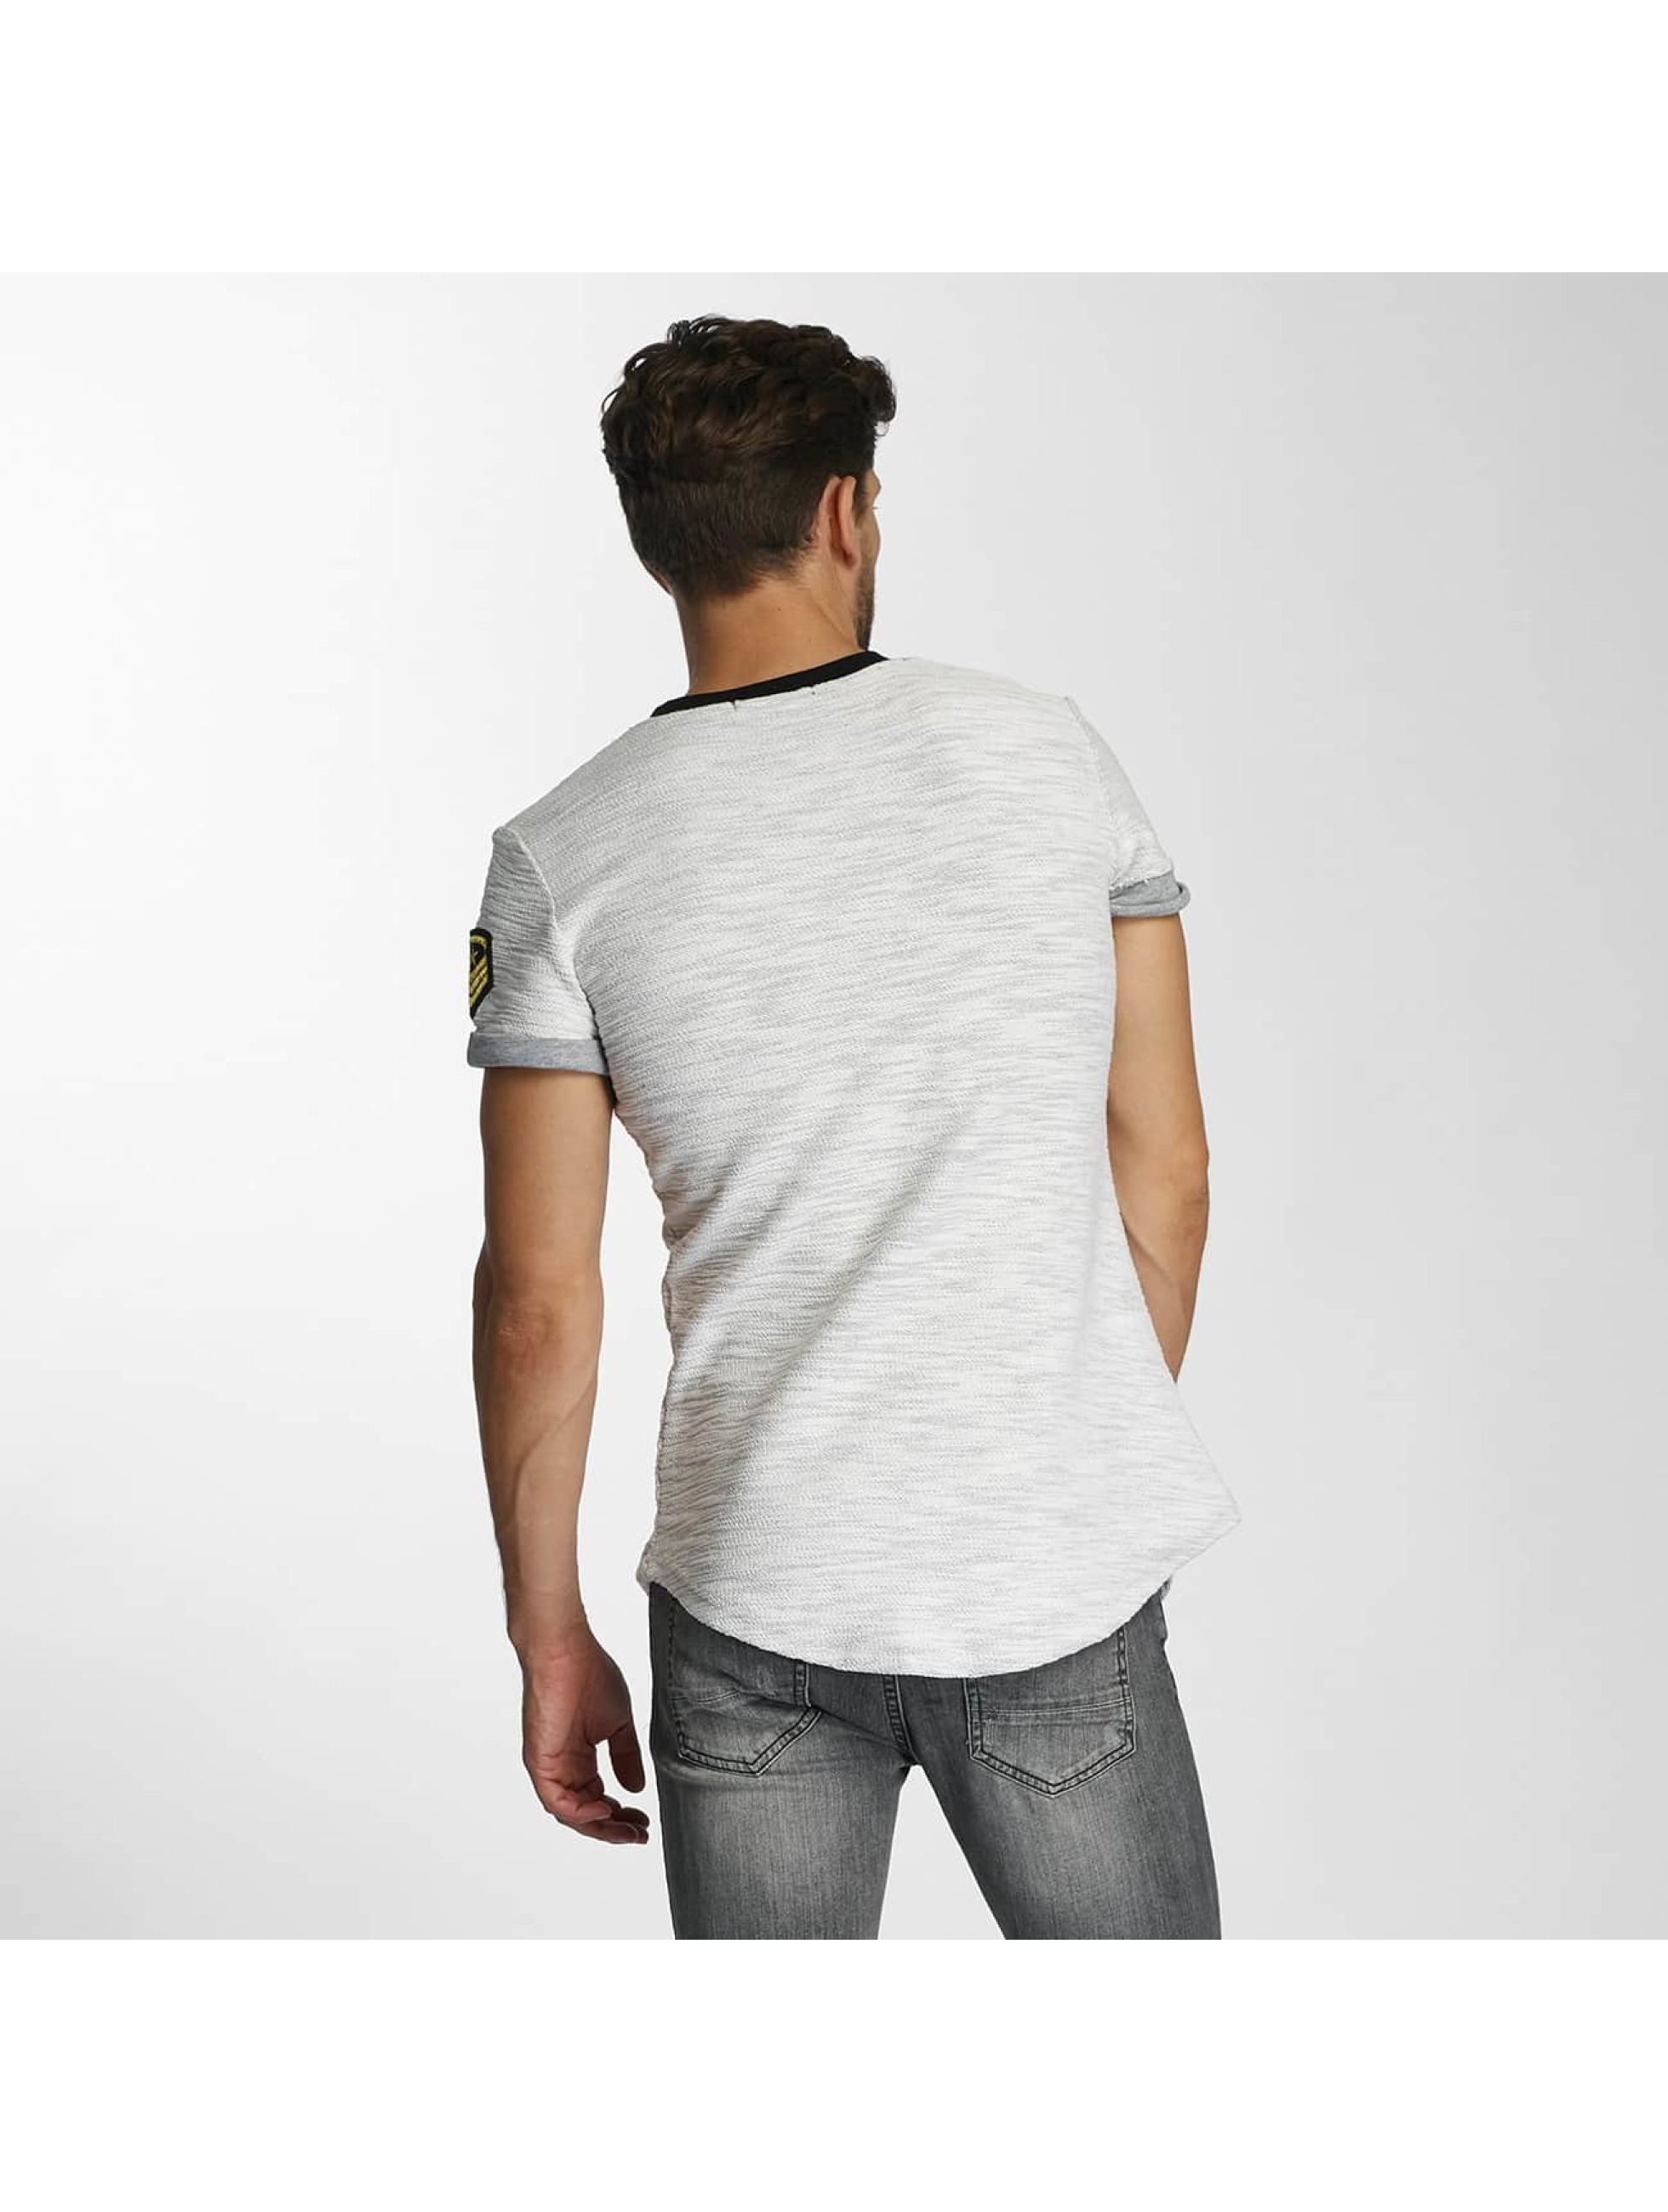 Paris Premium Tall Tees Tulsa grey